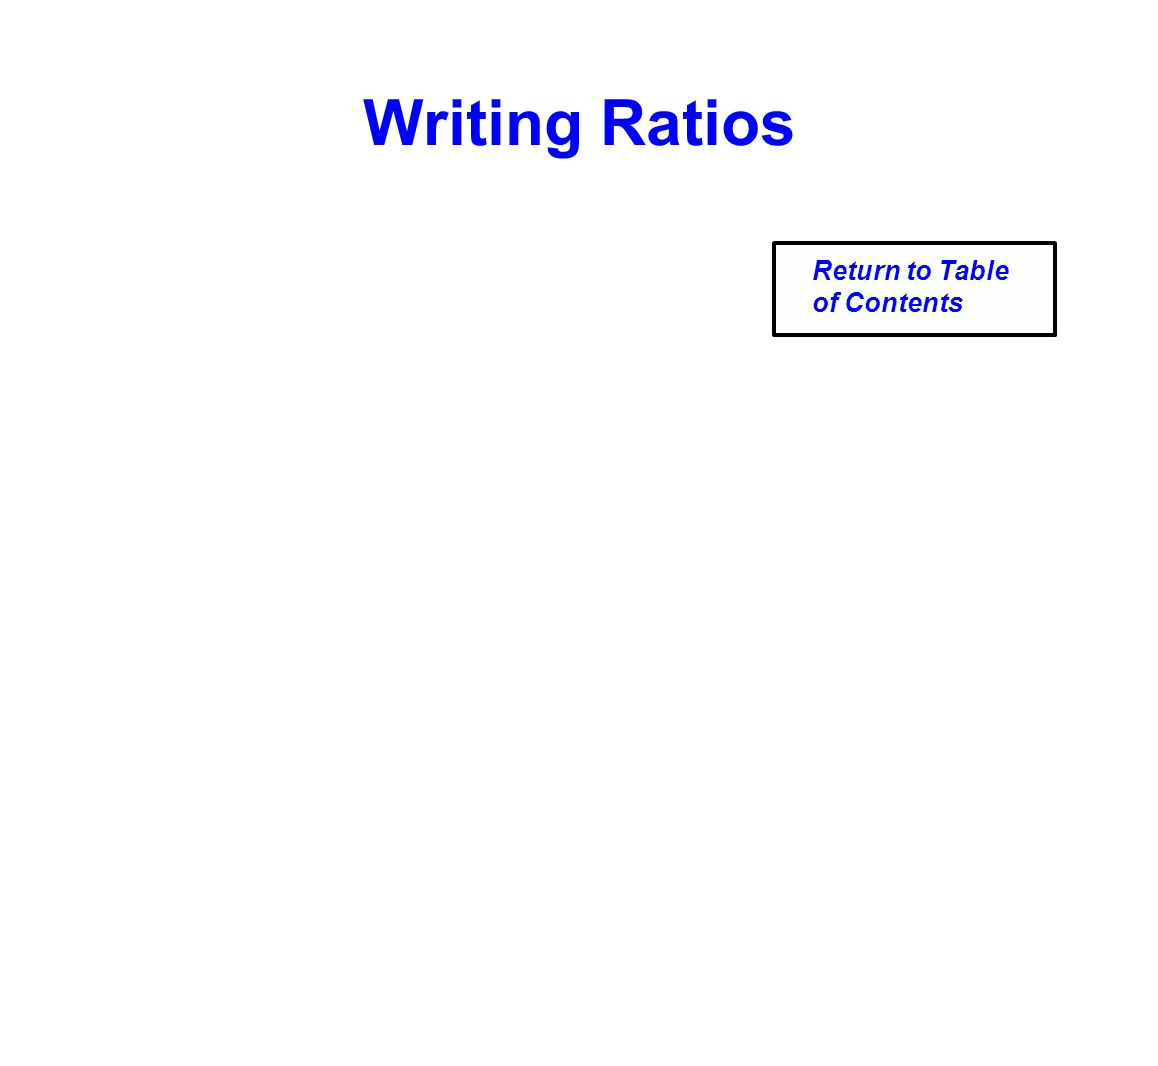 What do you know about ratios? When have you seen or used ratios? Ratios